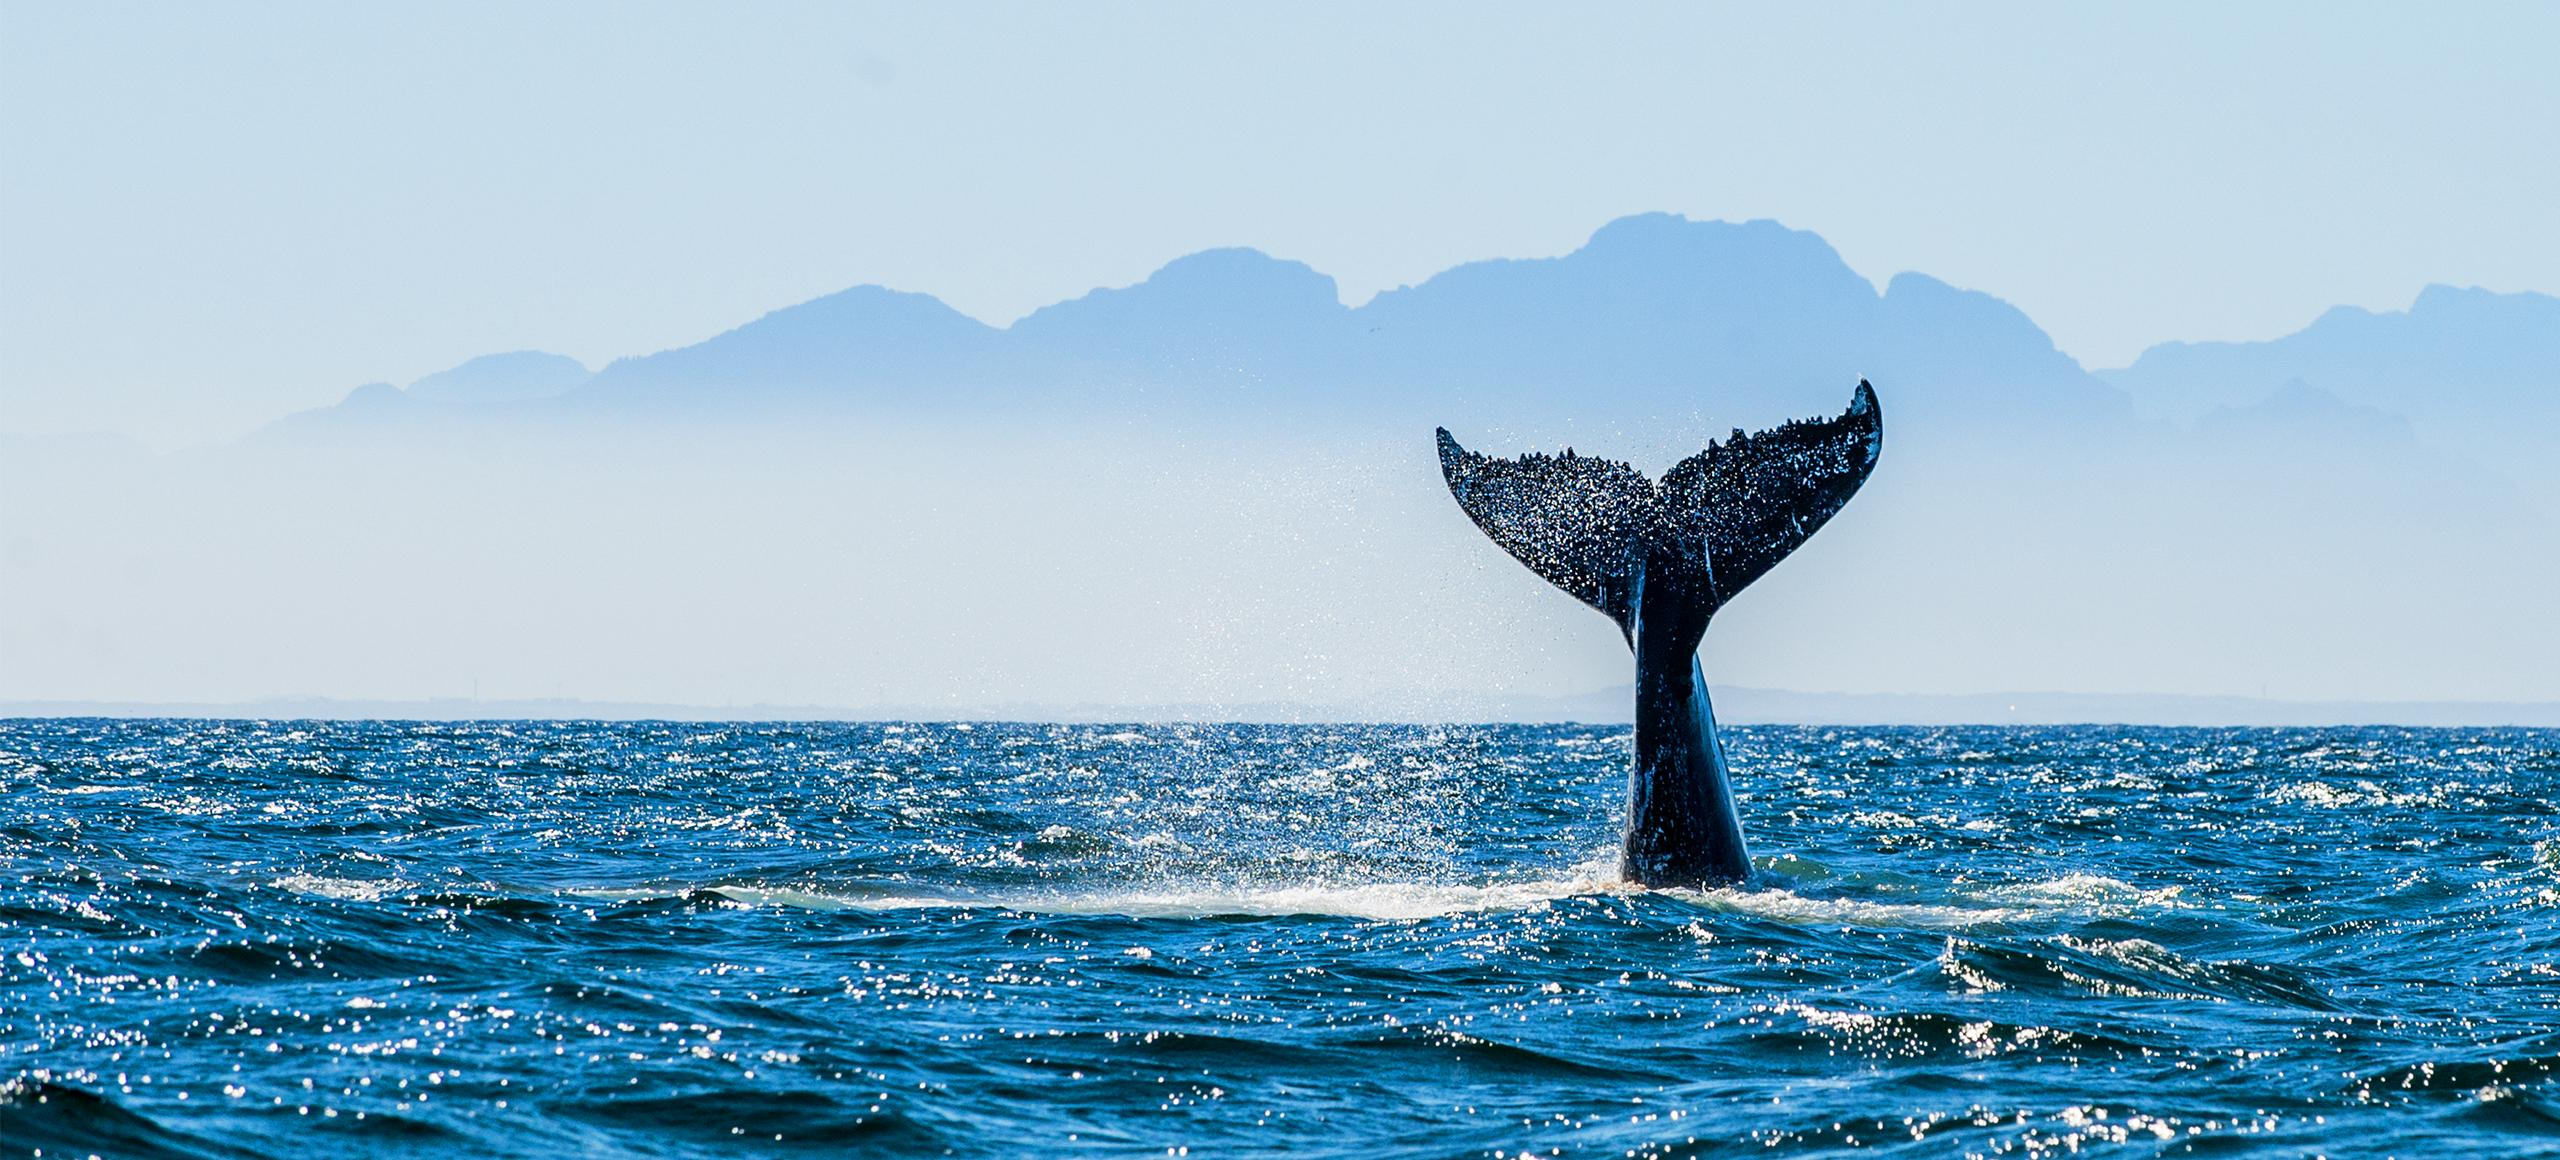 Whale in the ocean